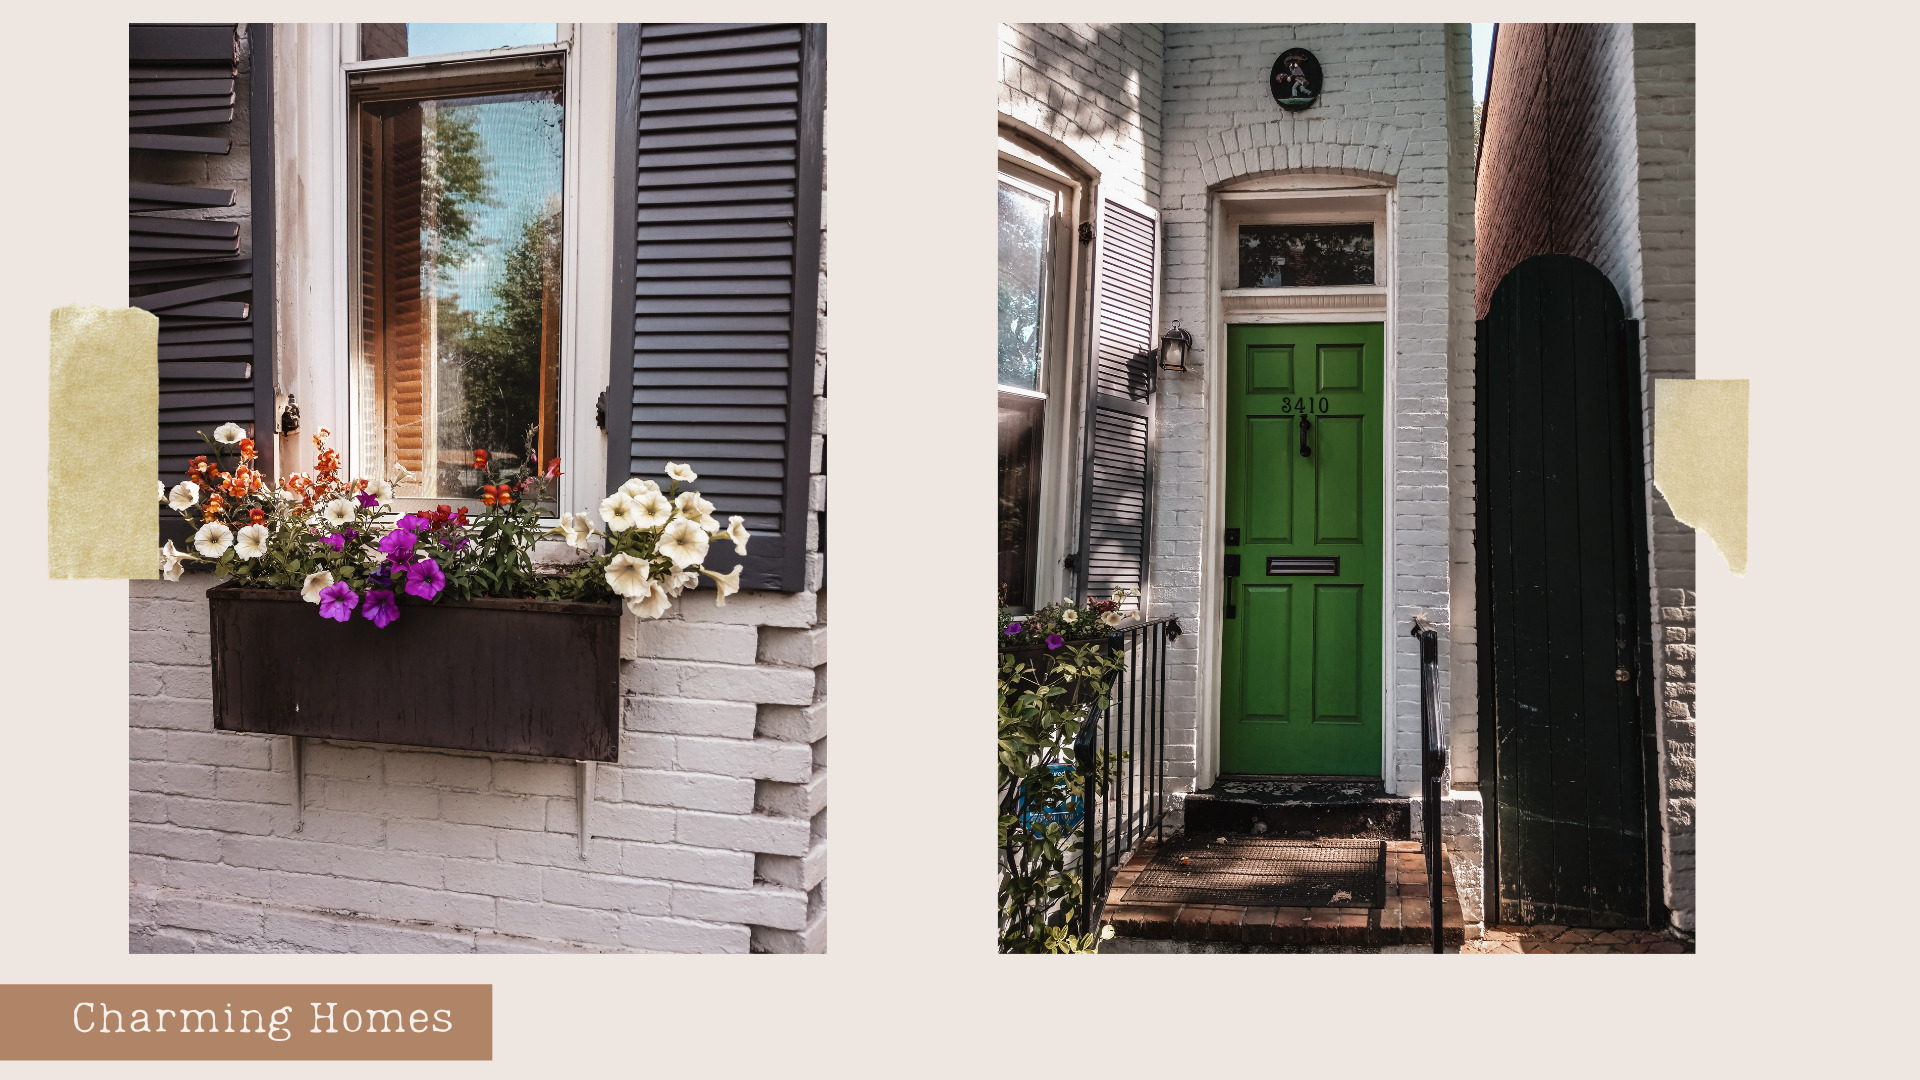 Image of homes in Georgetown DC, This Bahamian Gyal blog